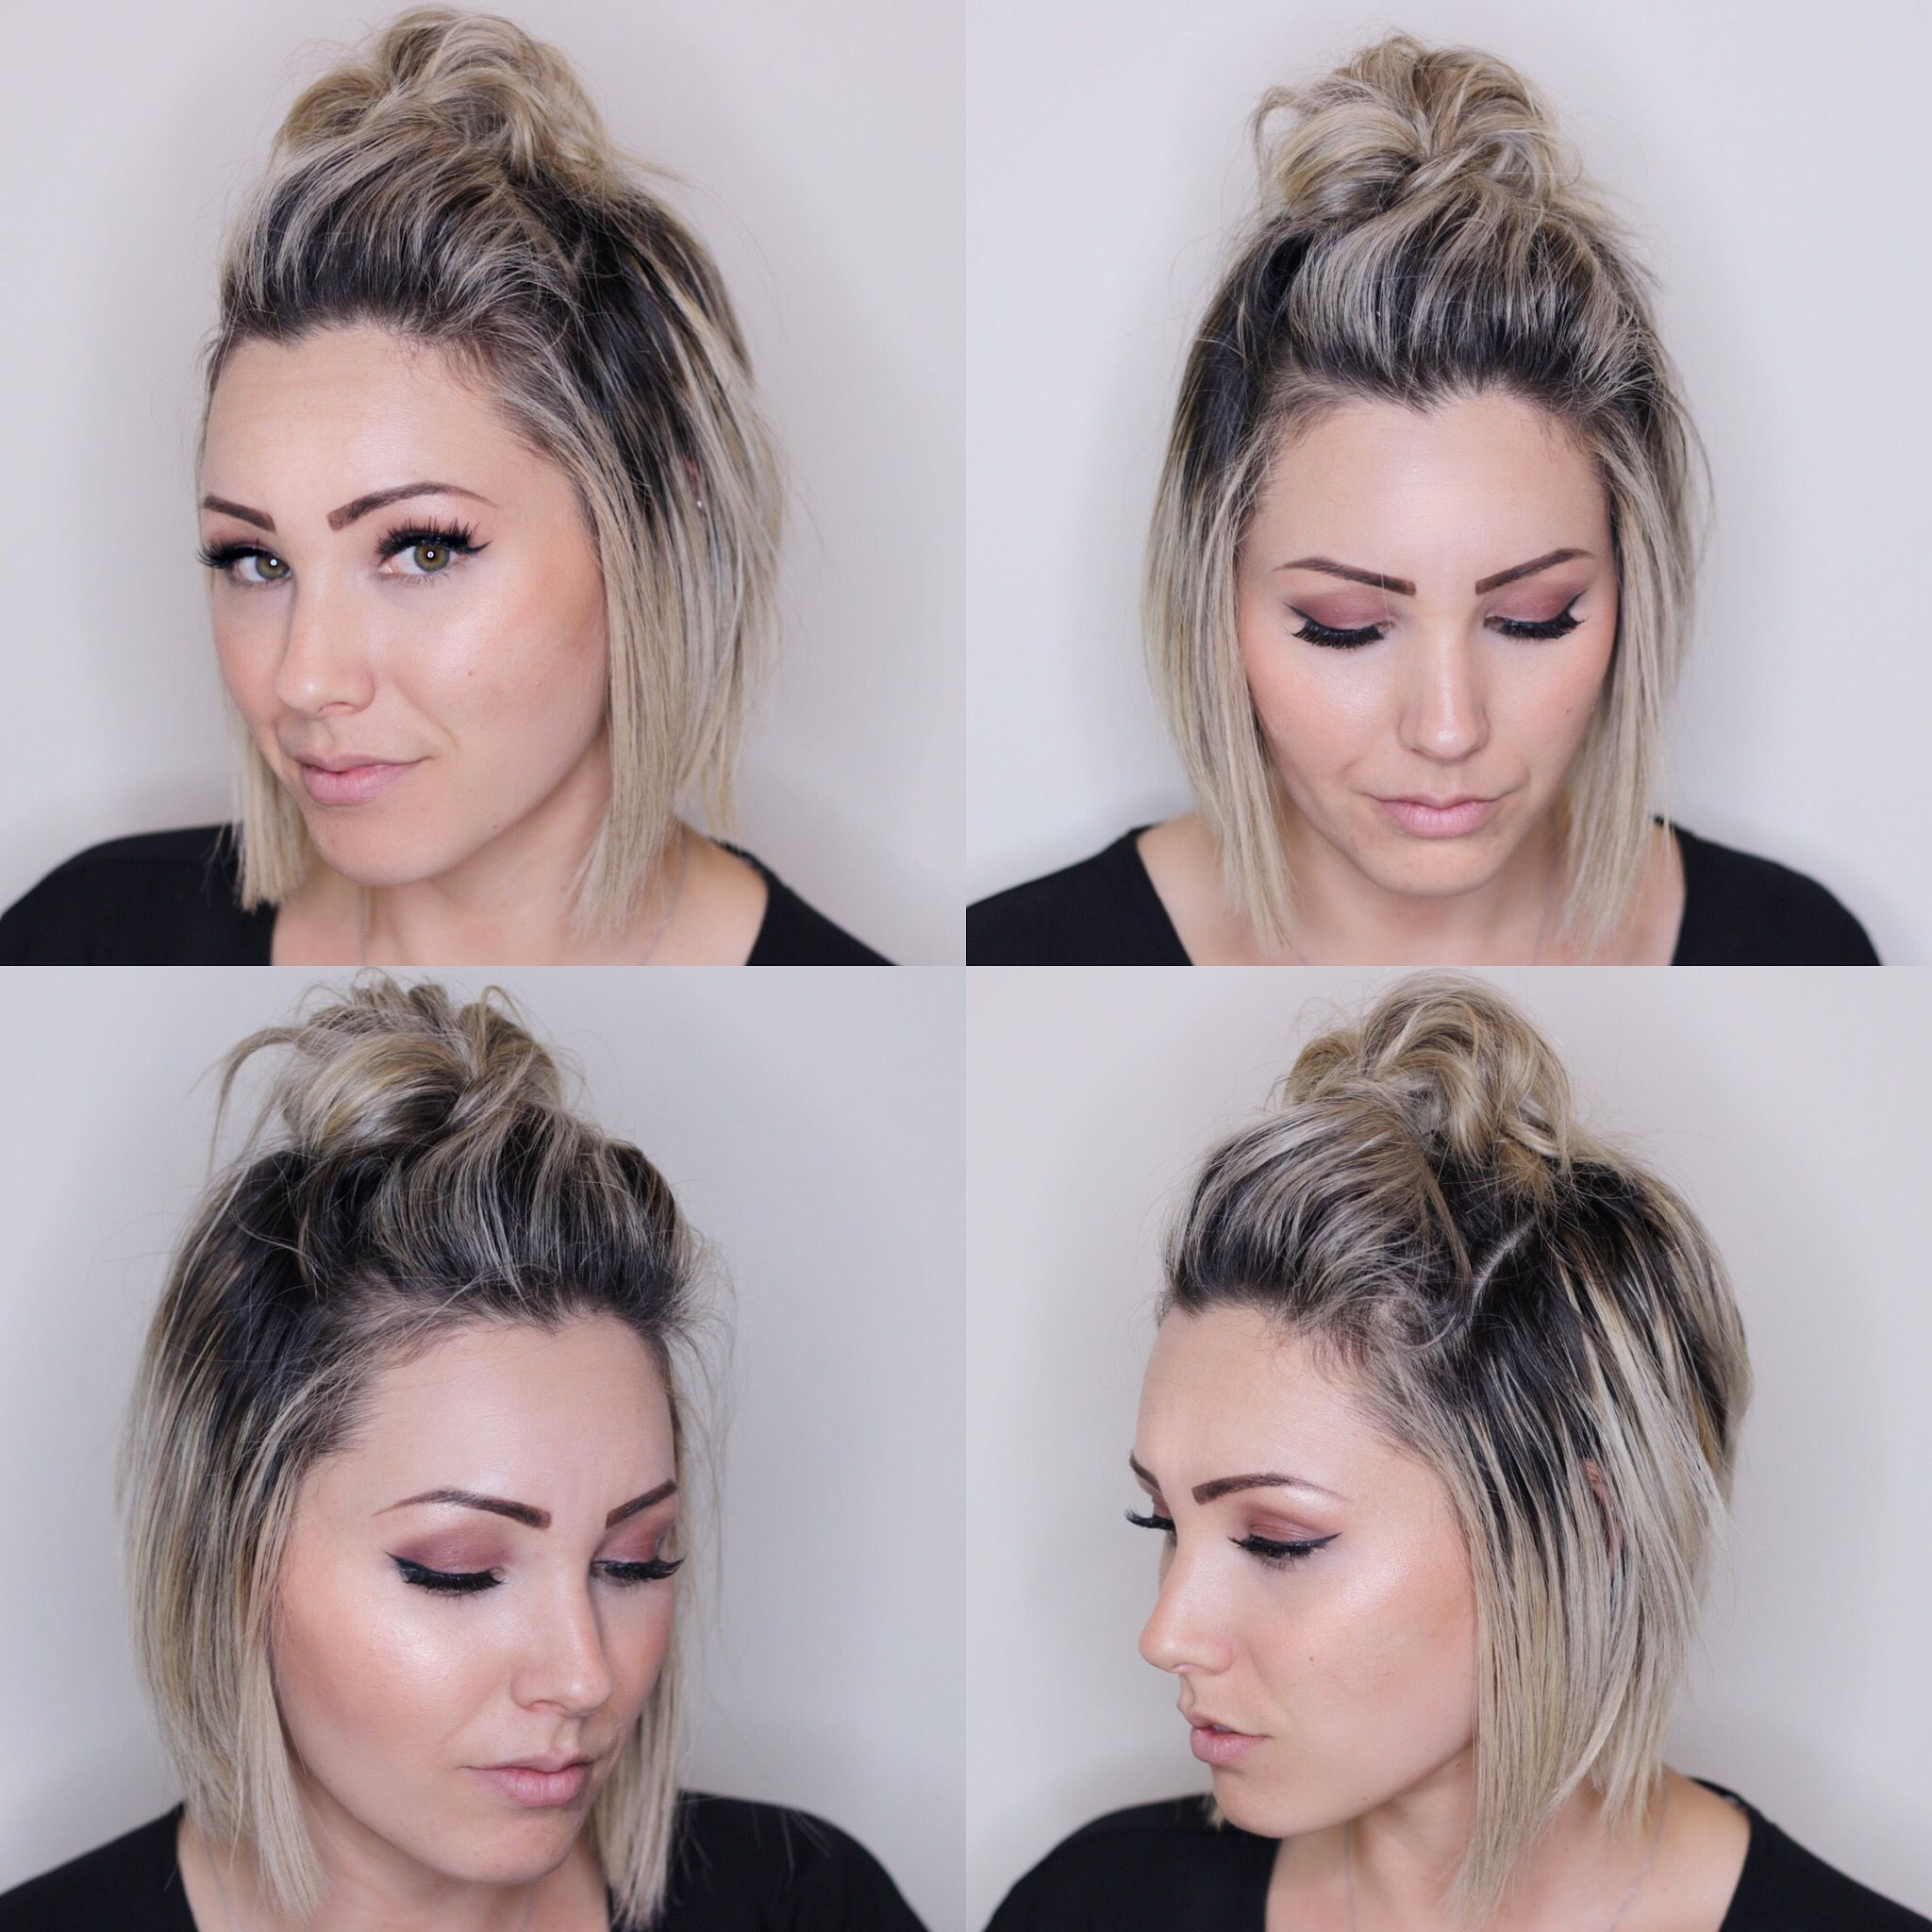 top knot for short hair. short hairstyle. soft bob haircut | h a i r